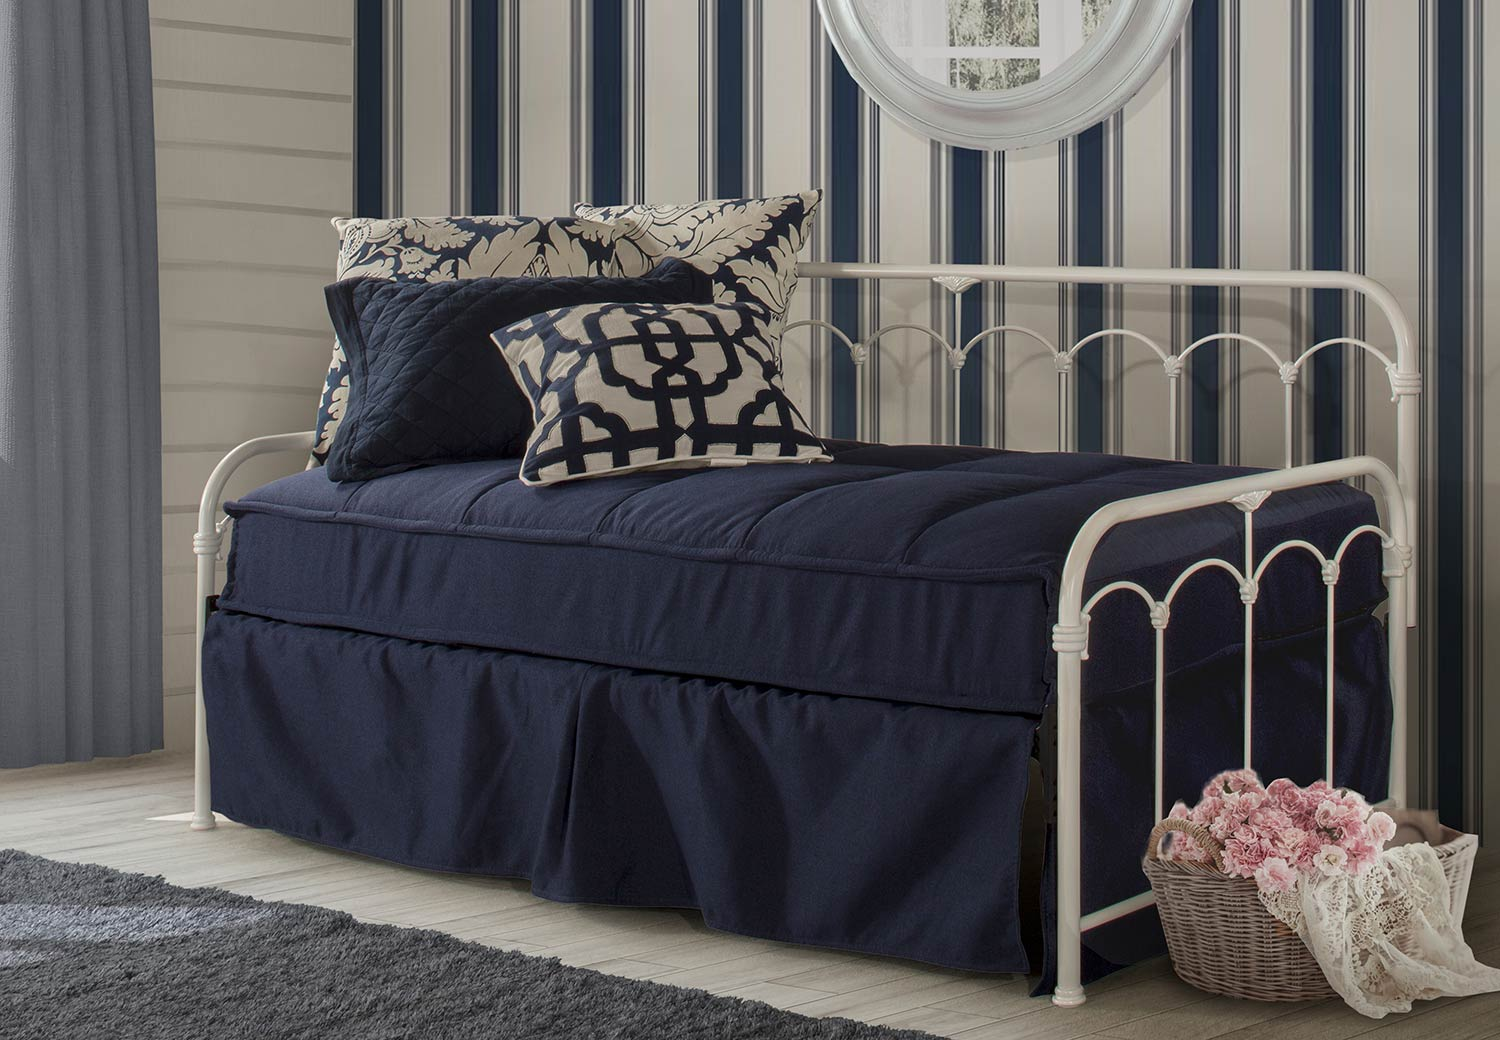 Hillsdale Jocelyn Daybed with Trundle - White